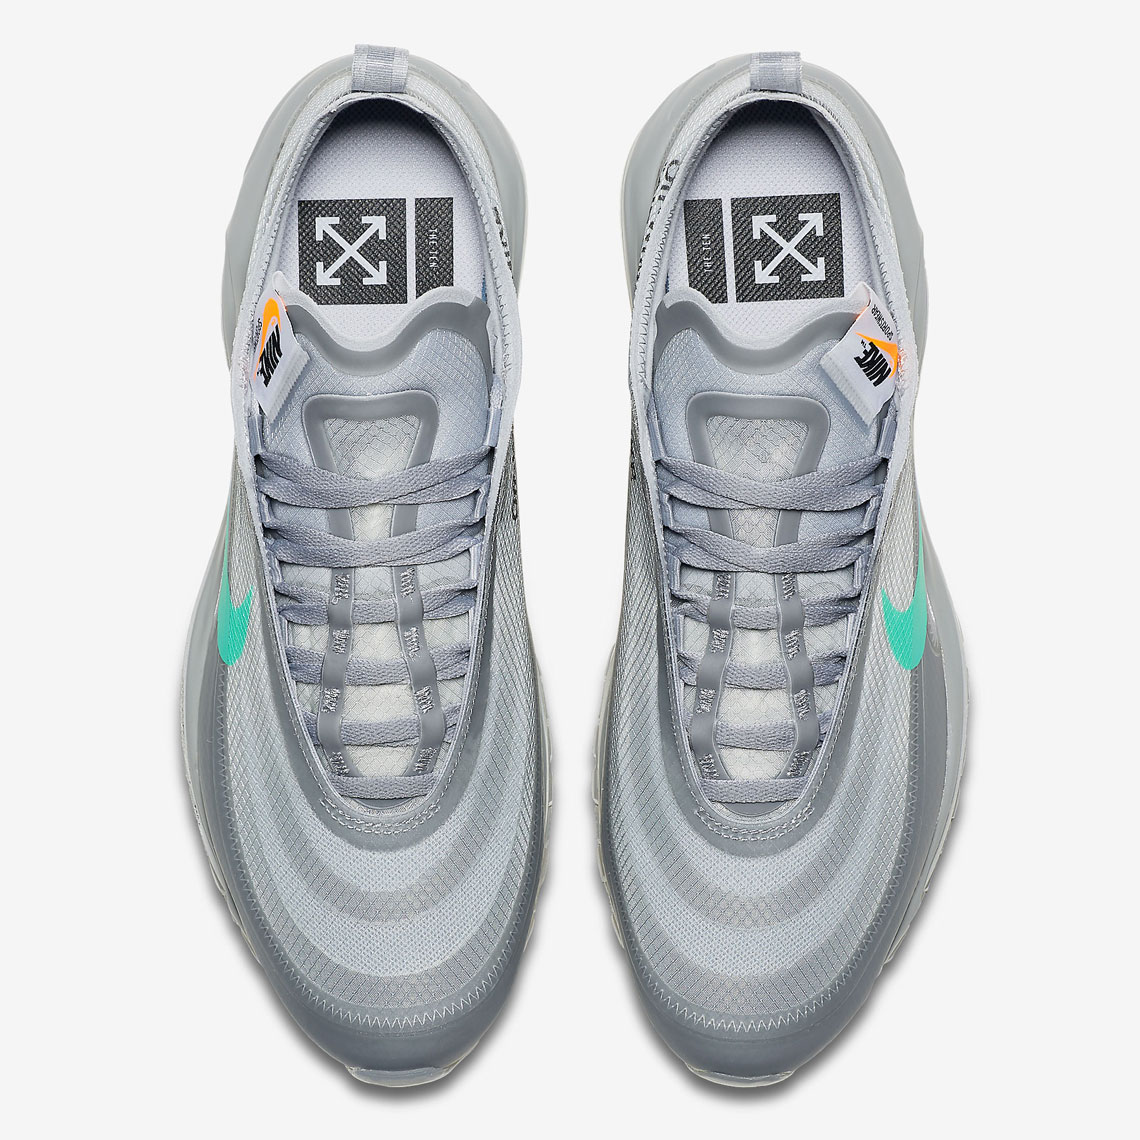 Off White x Nike Air Max 97 Menta Sneaker Style